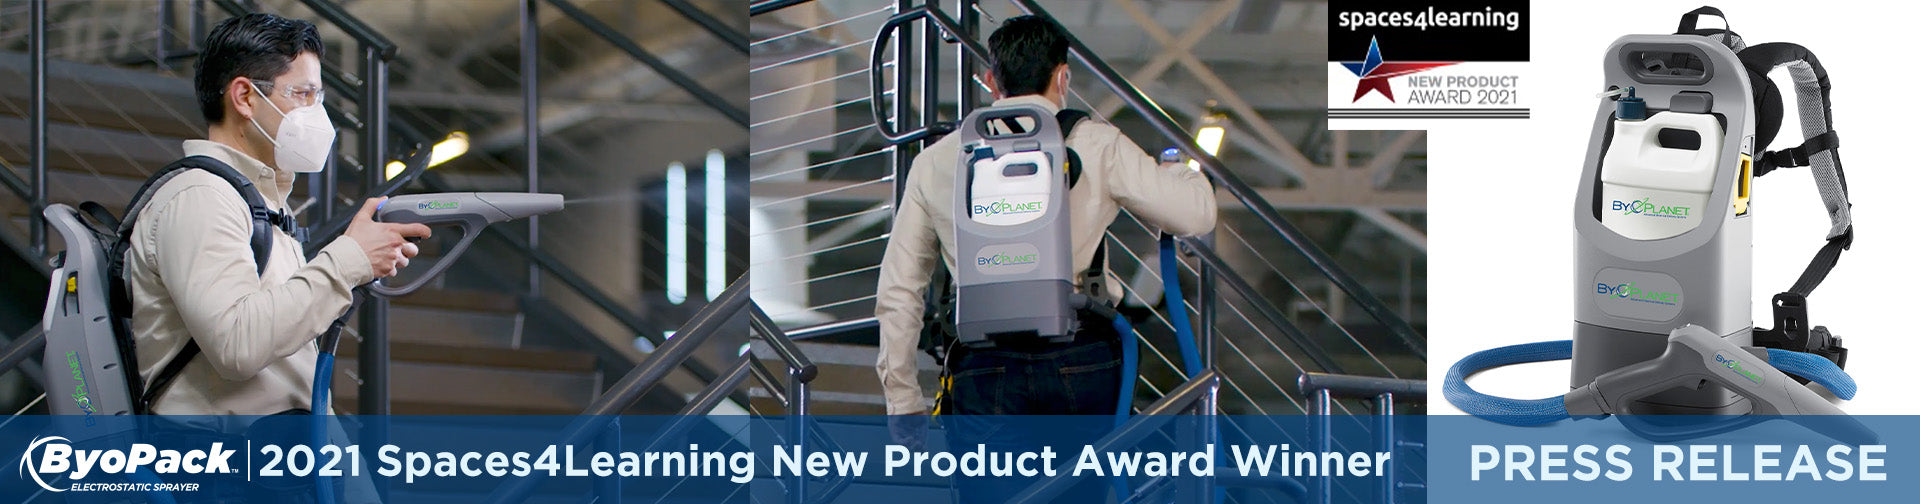 Daily use of the ByoPlanet® electrostatic spray system can help reduce rsa virus spread